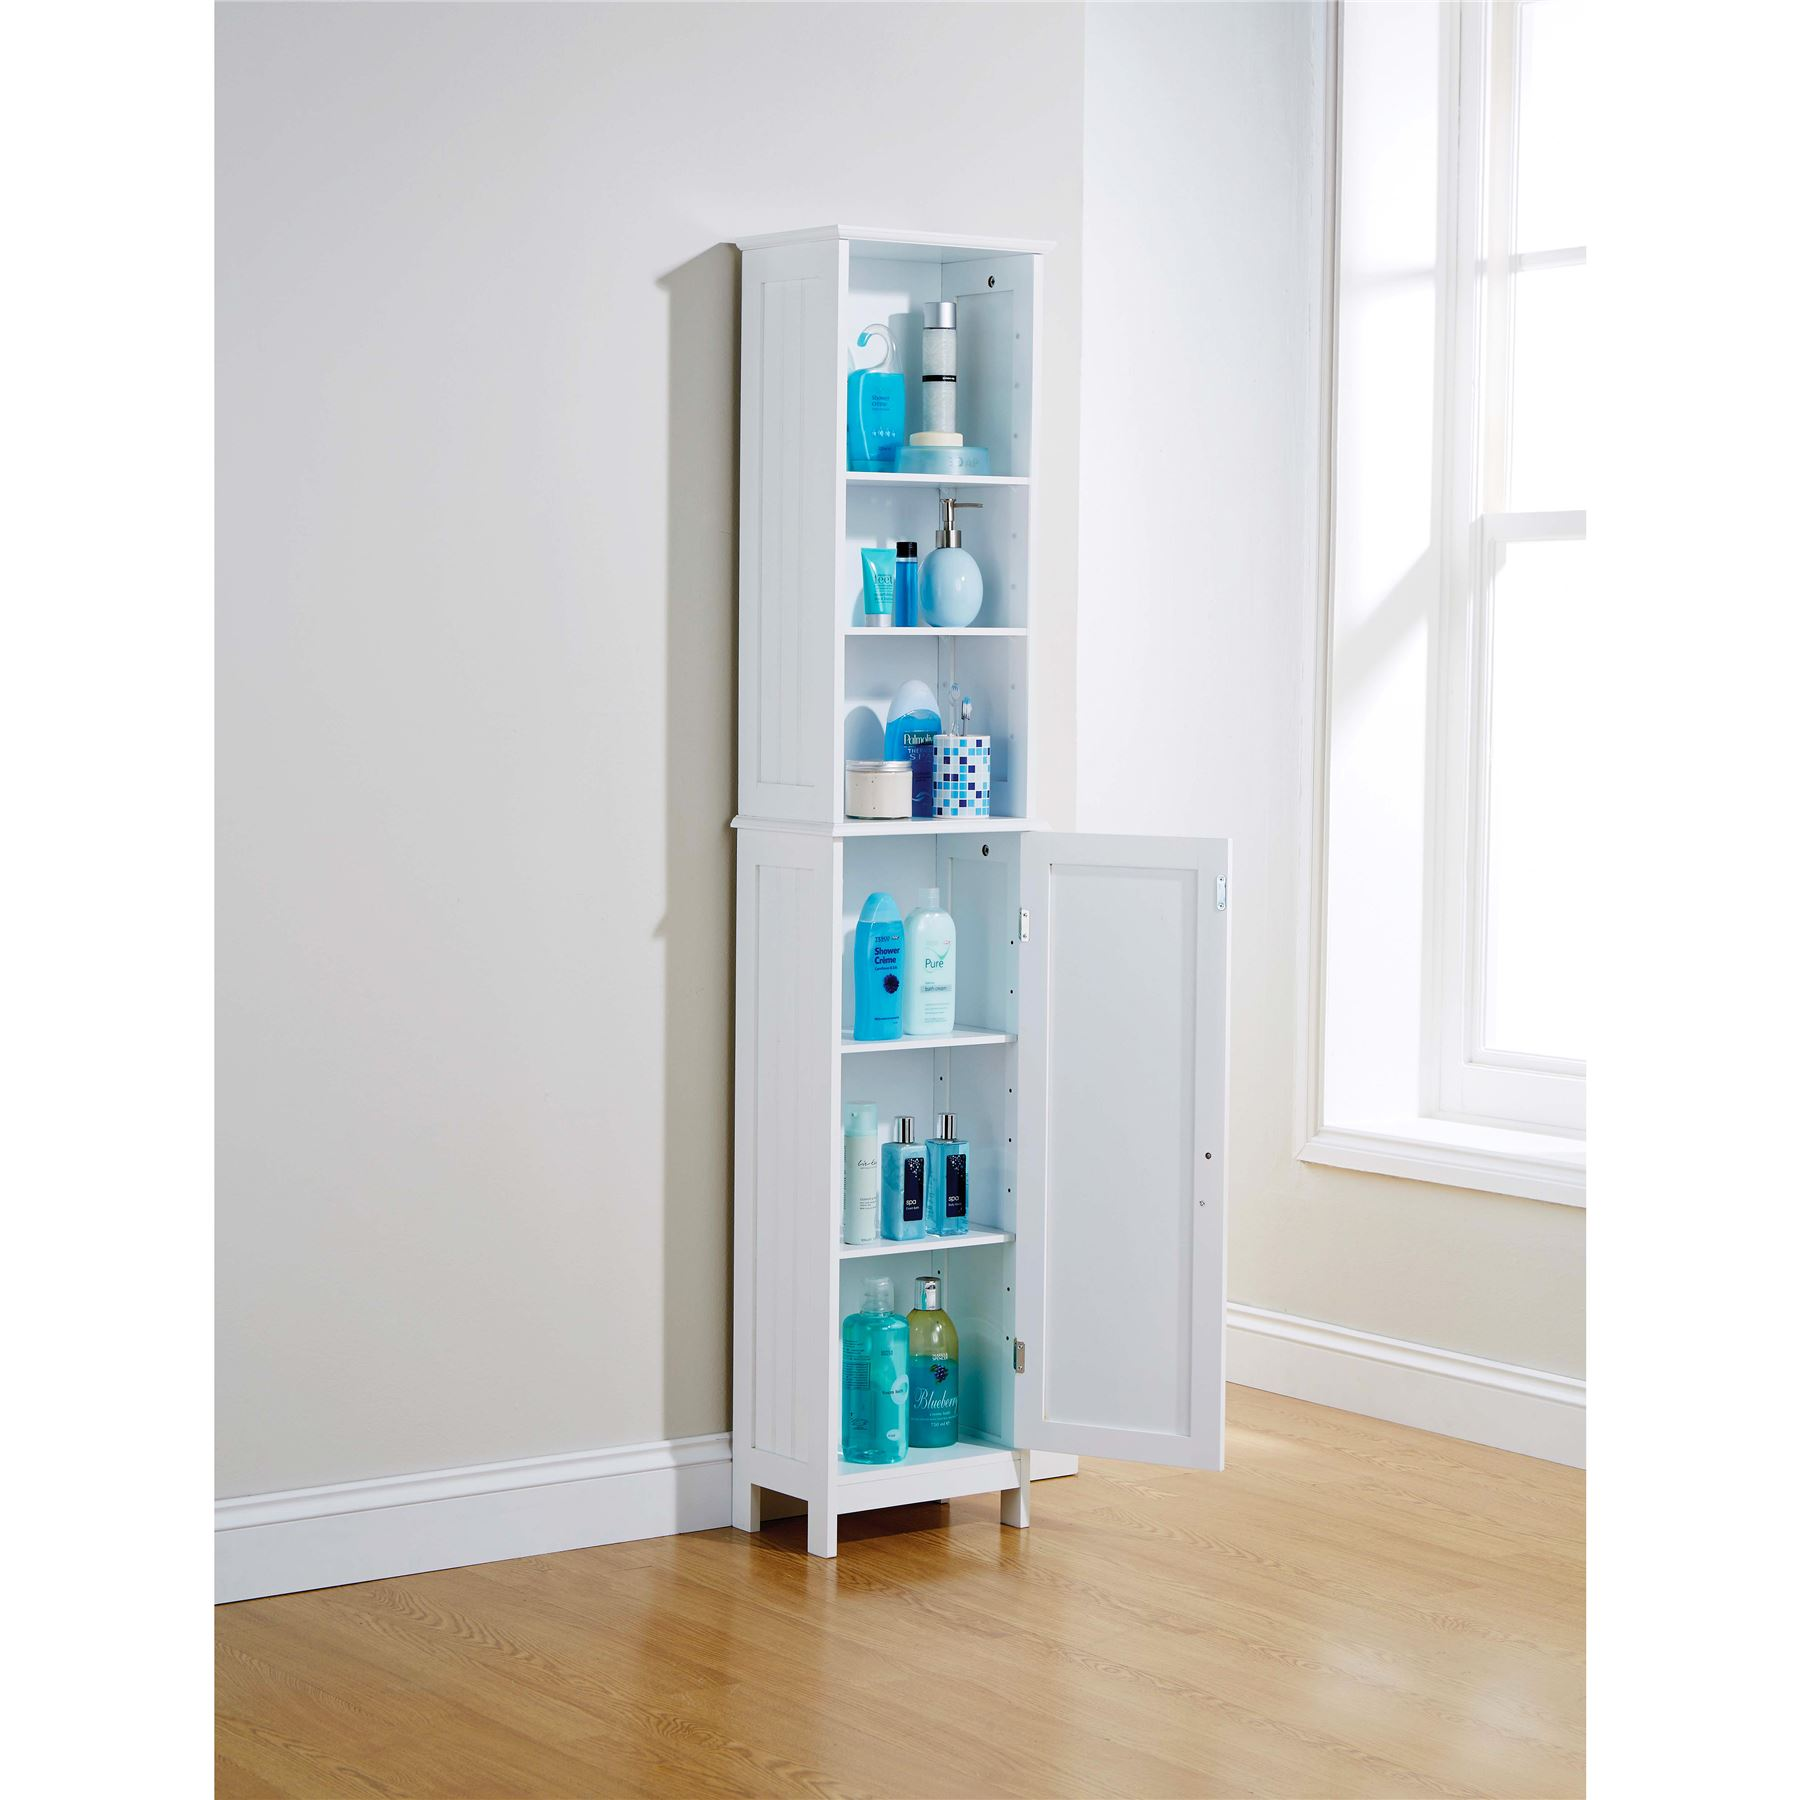 Unique  Storage Accessories Including A Towel Rail A 3tier Storage Caddy And